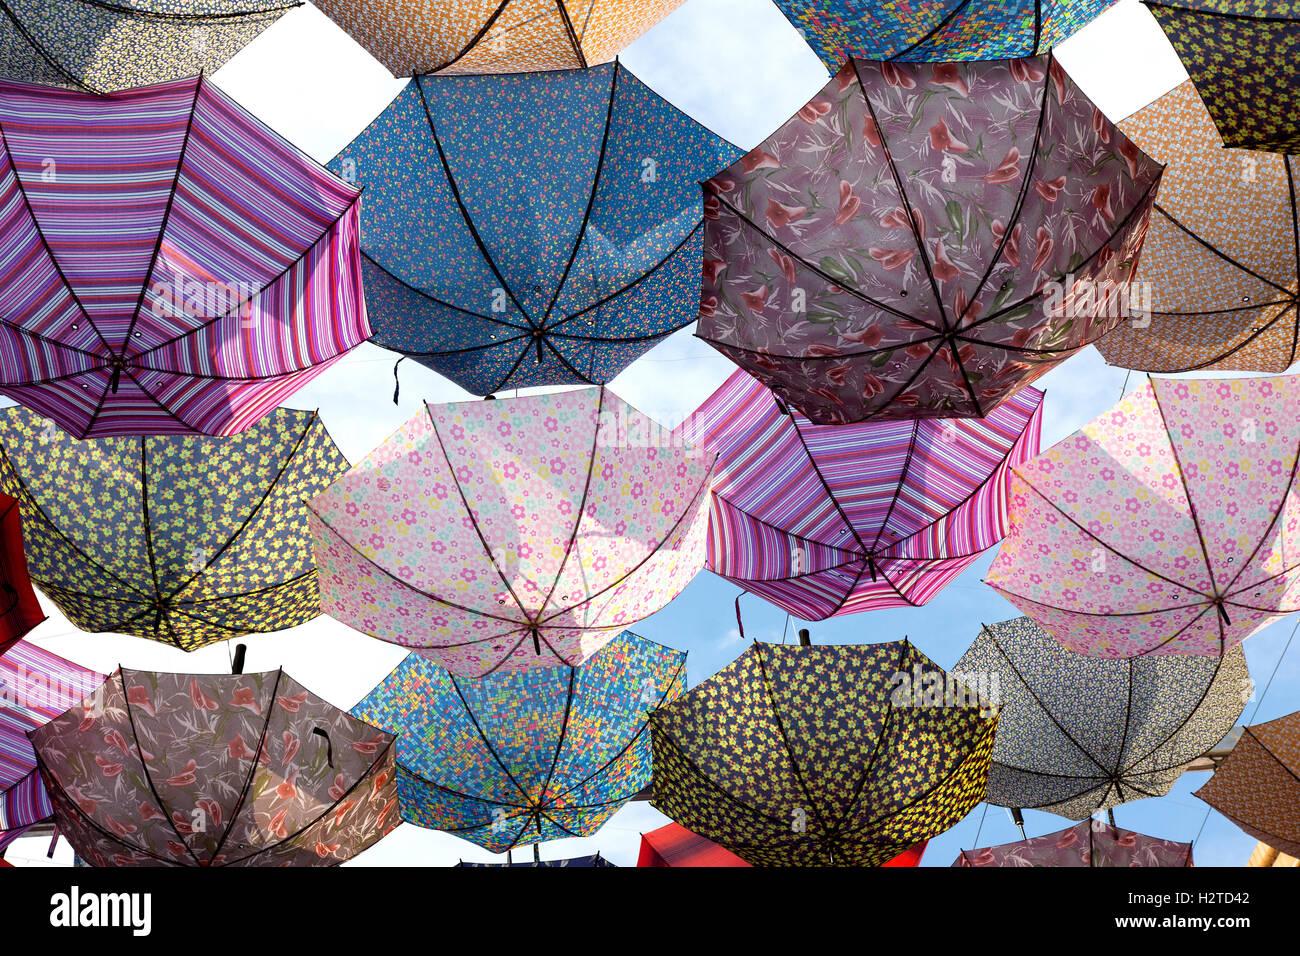 Colorful umbrellas flying in the sky - Stock Image